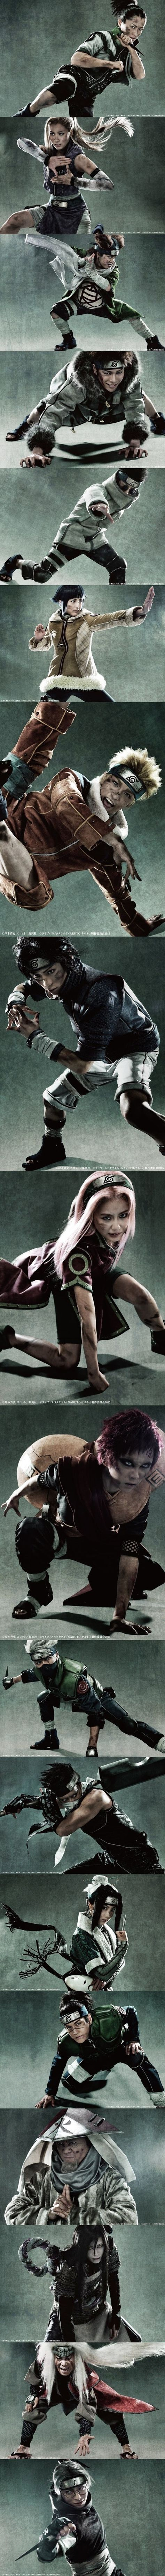 Live Spectacle Naruto [ http://www.crunchyroll.com/anime-news/2015/02/05/shikamaru-ino-chouji-kiba-shino-hinata-visuals-for-naruto-stage-play-unveiled ]